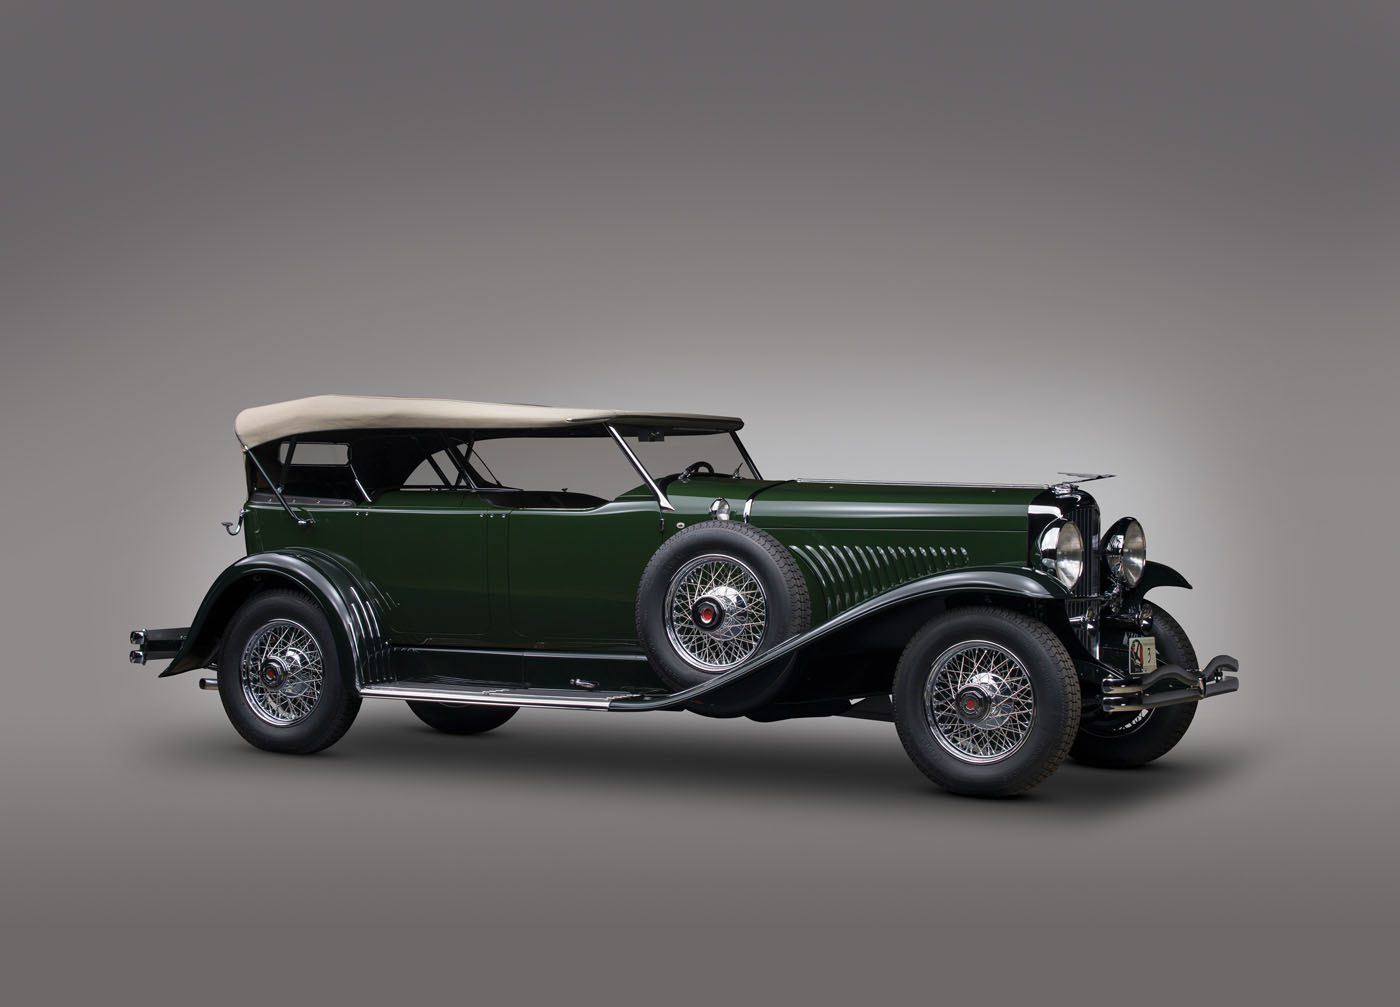 RM Sotheby's Presents The Paul Andrews Estate Collection: 1929 Duesenberg Model J 'Butterfly' Dual-Cowl Phaeton by Murphy